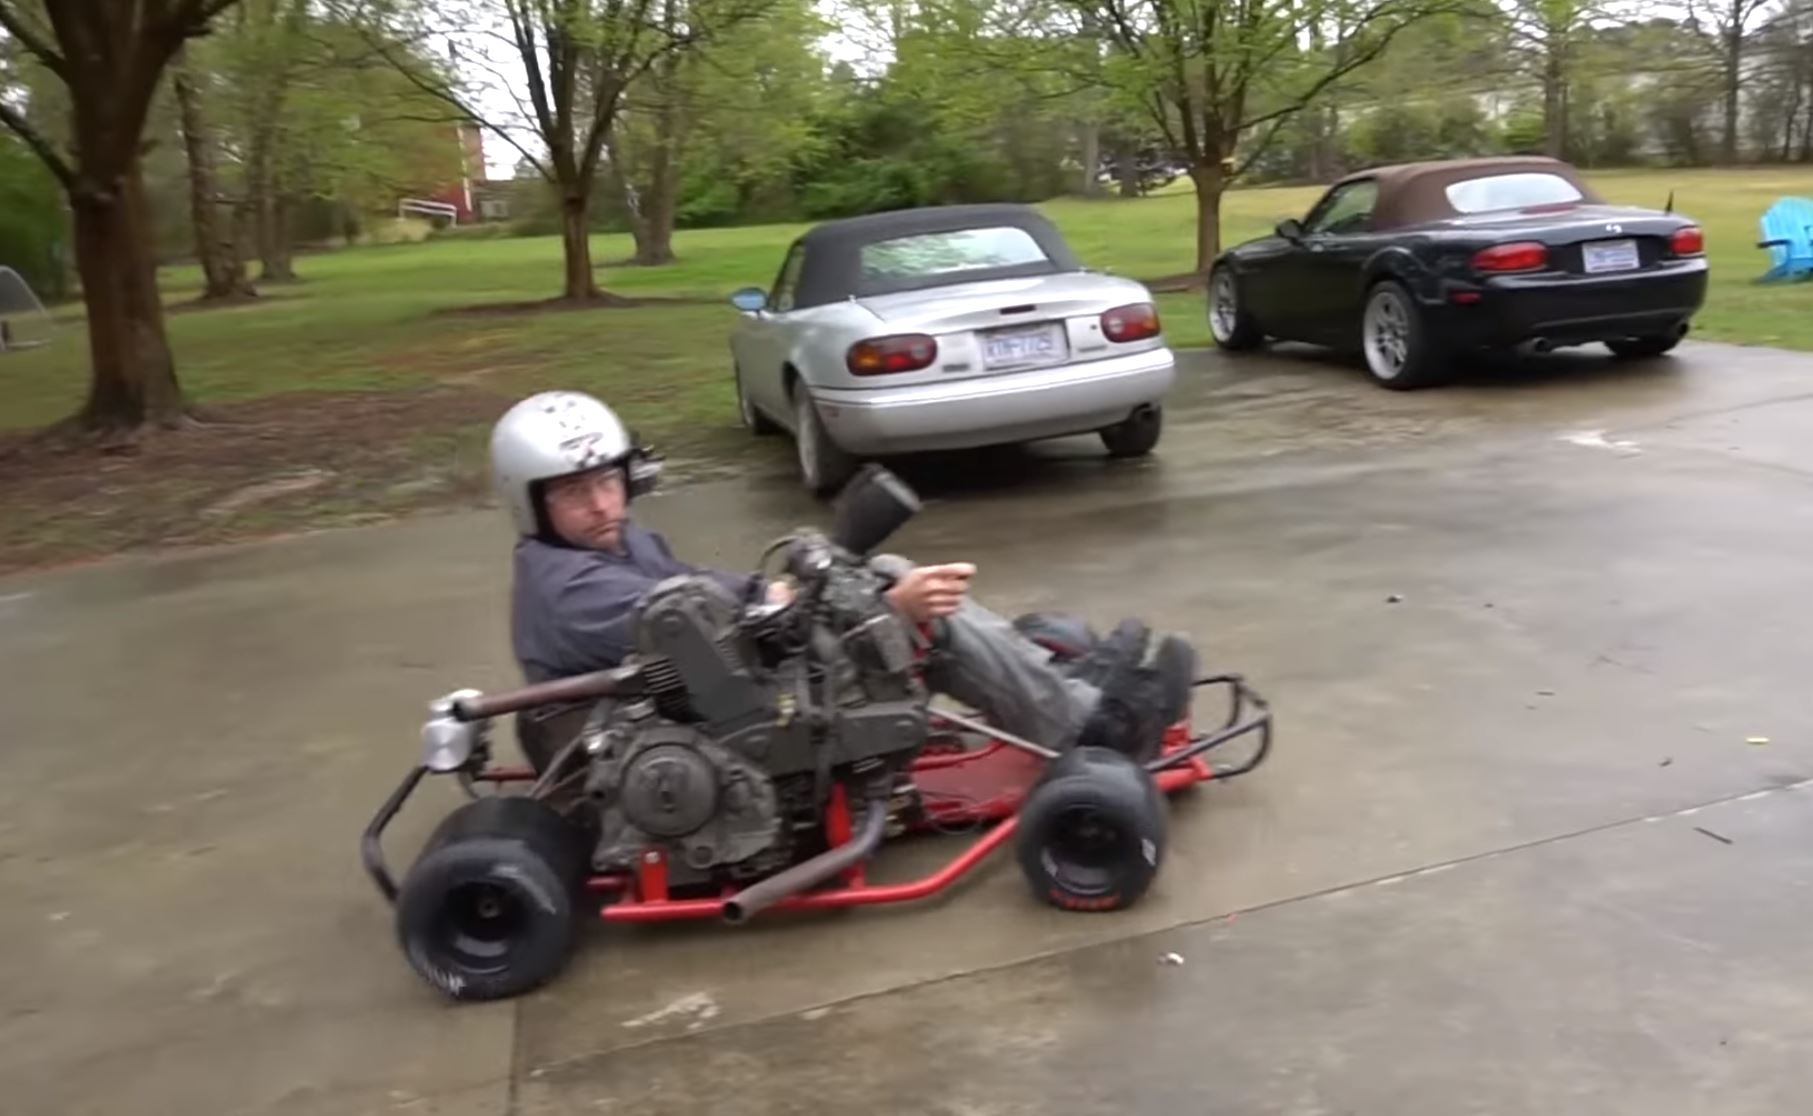 Best of 2019: This 900cc Ducati Powered Shifter Kart Is Perhaps The Deadliest And Most Fun Thing Ever